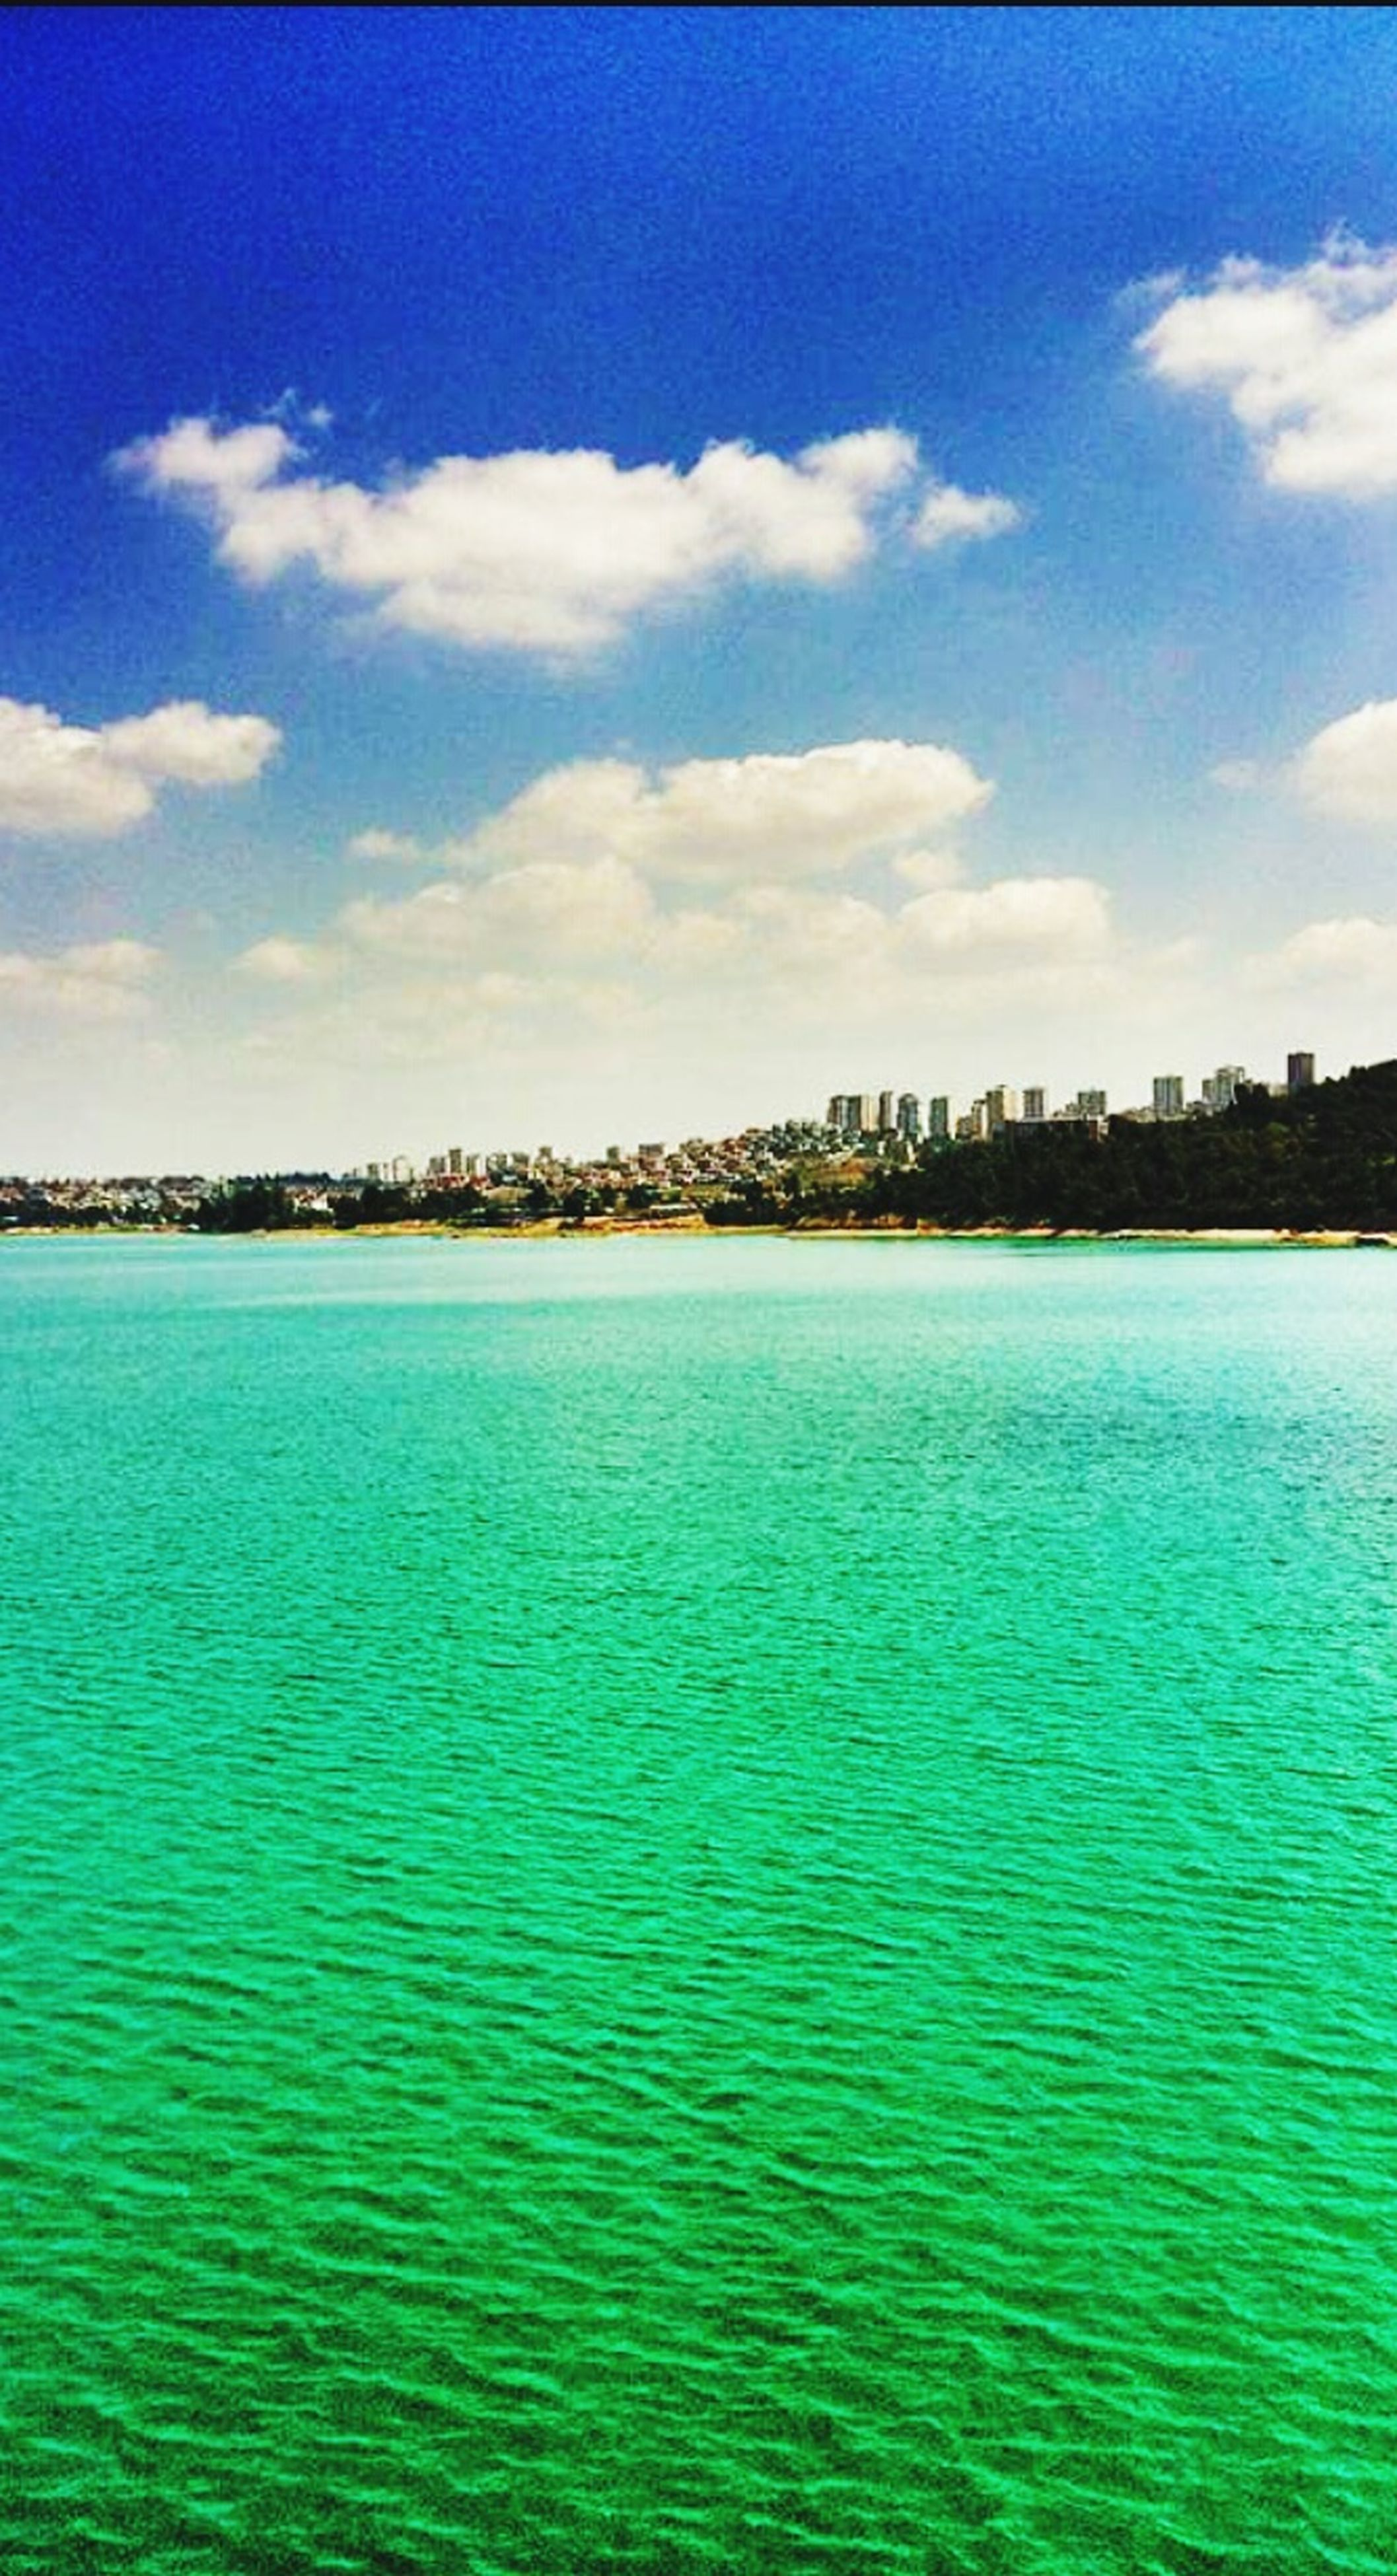 water, blue, waterfront, sky, tranquil scene, tranquility, scenics, rippled, beauty in nature, nature, cloud, idyllic, cloud - sky, turquoise colored, day, outdoors, no people, calm, seascape, remote, non-urban scene, non urban scene, ocean, water surface